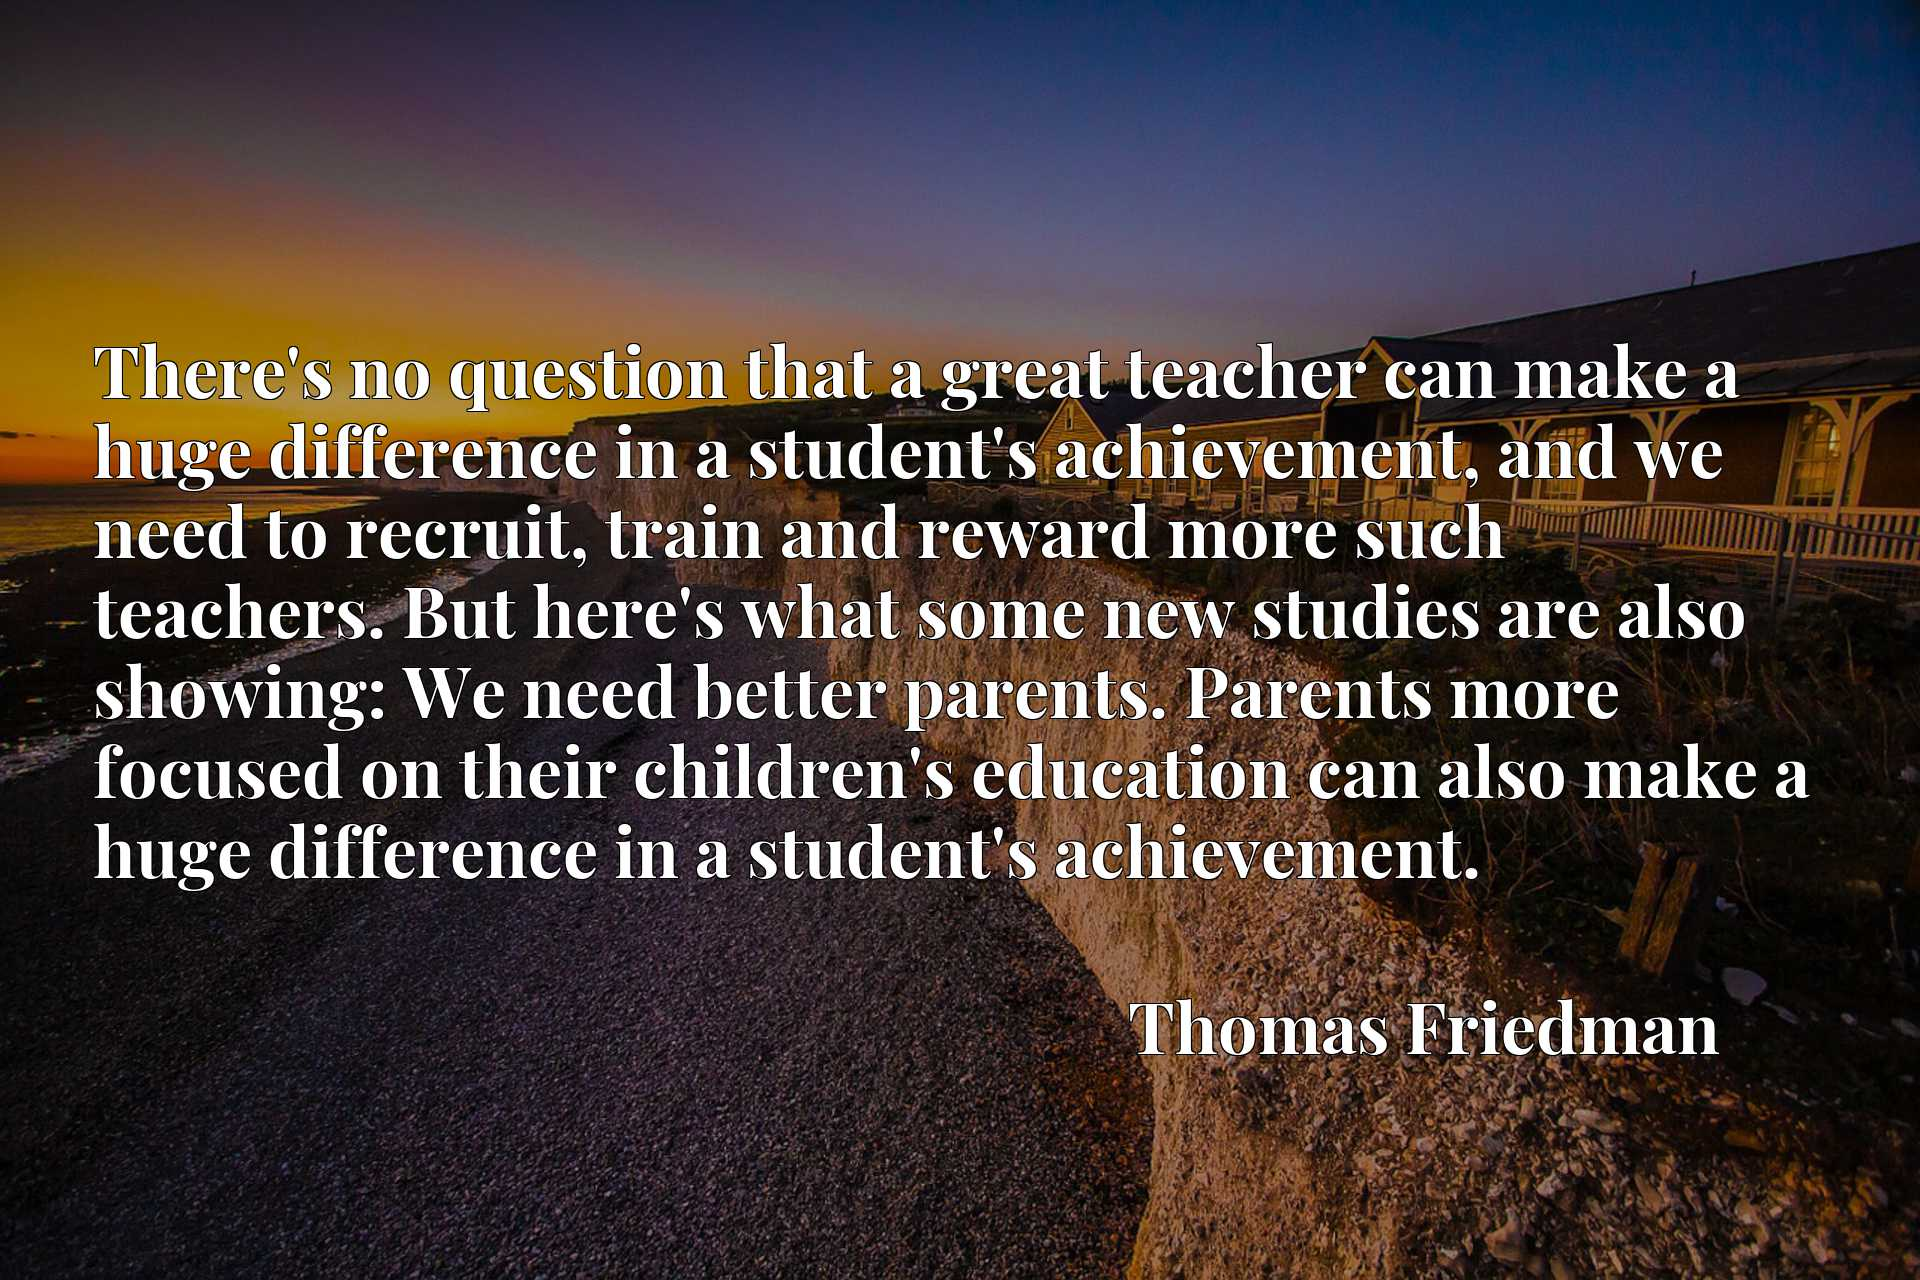 There's no question that a great teacher can make a huge difference in a student's achievement, and we need to recruit, train and reward more such teachers. But here's what some new studies are also showing: We need better parents. Parents more focused on their children's education can also make a huge difference in a student's achievement.